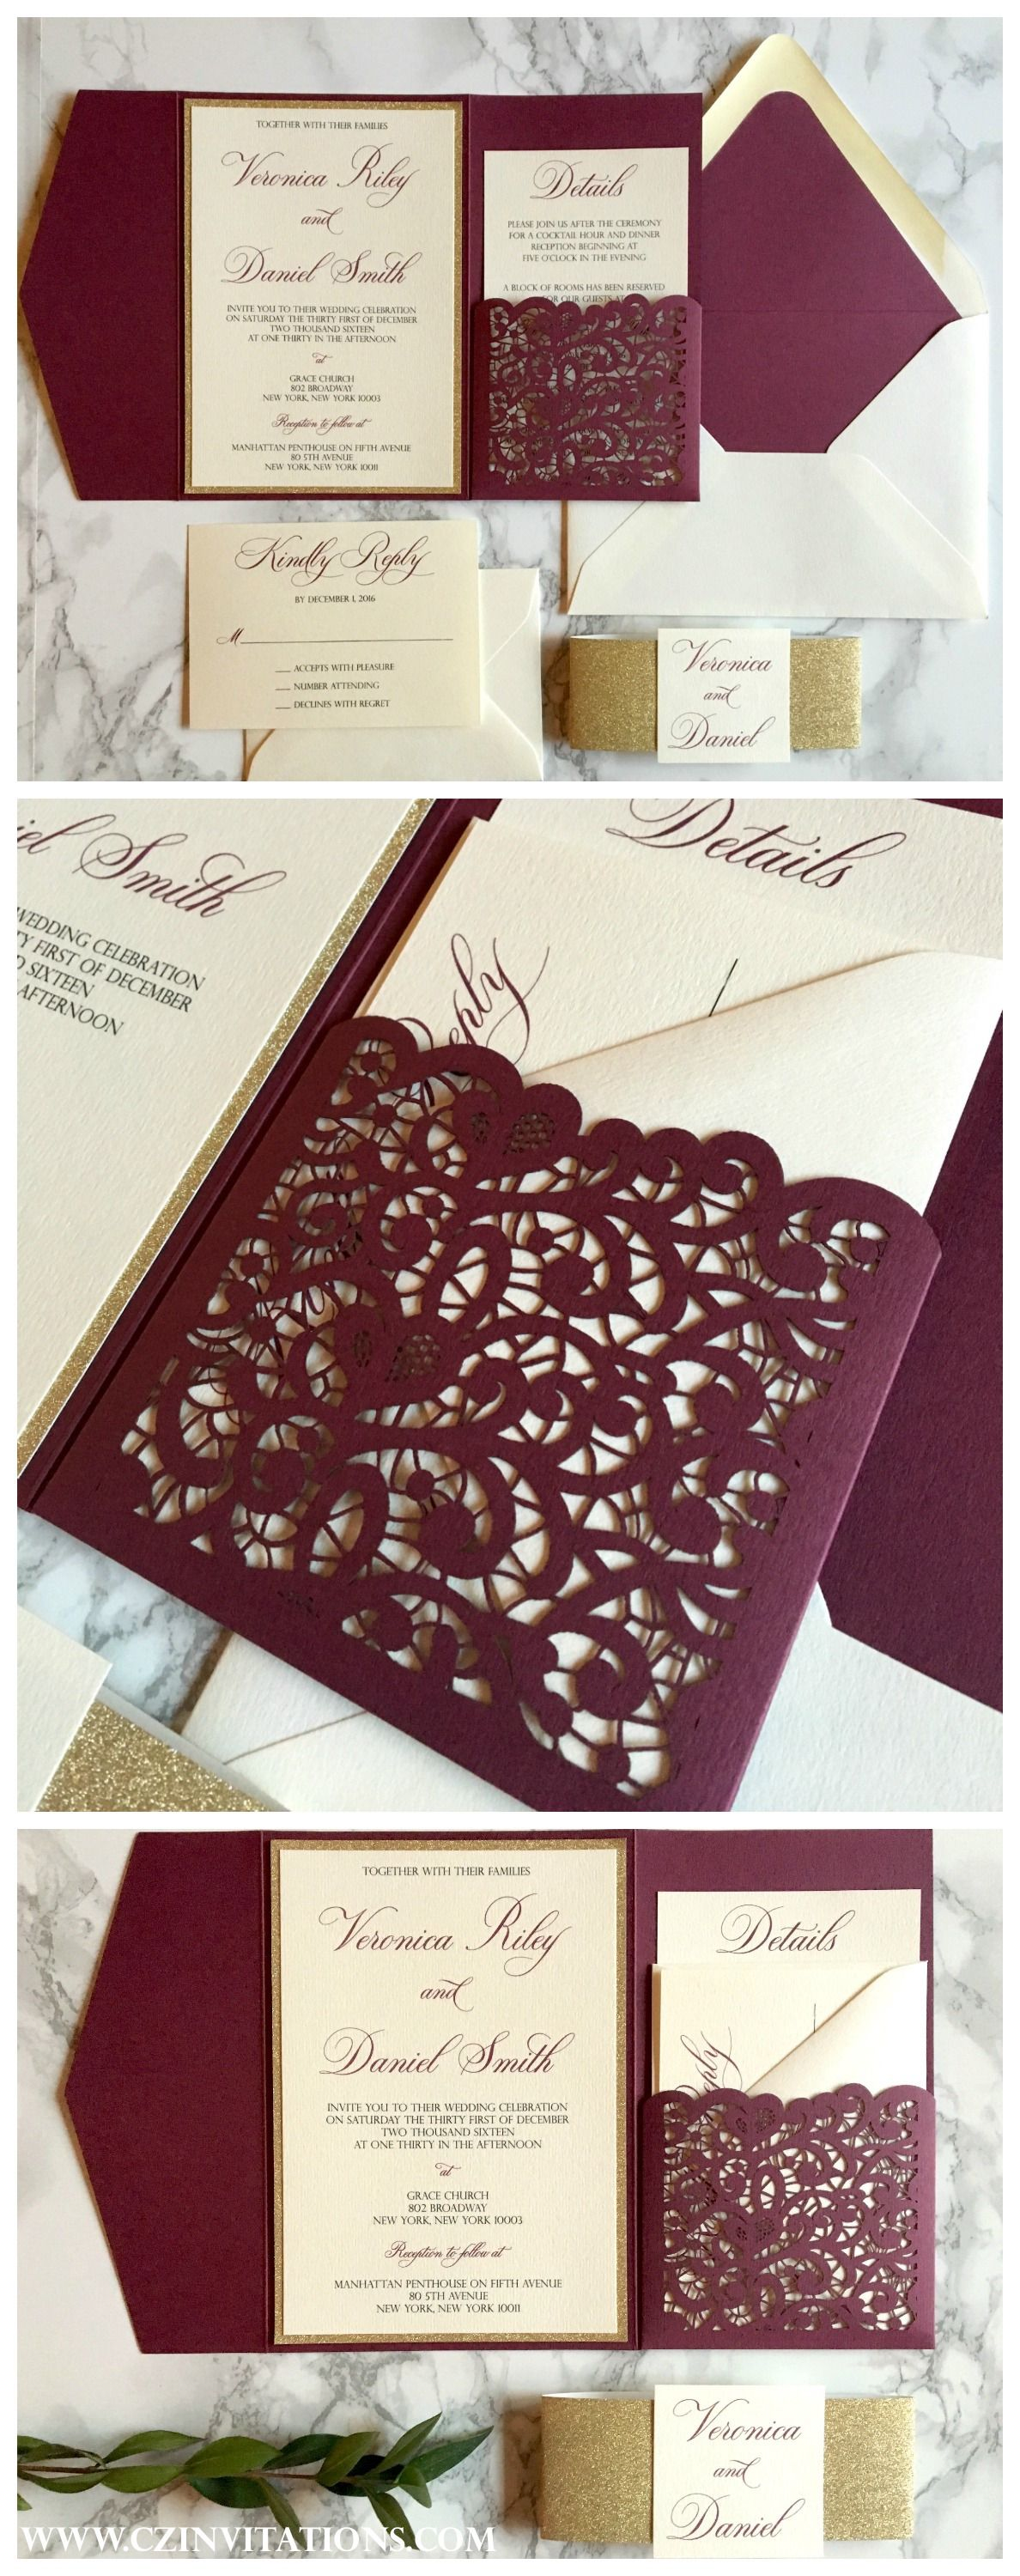 Burgundy and Gold Laser Cut Pocket Wedding Invitation | Pinterest ...